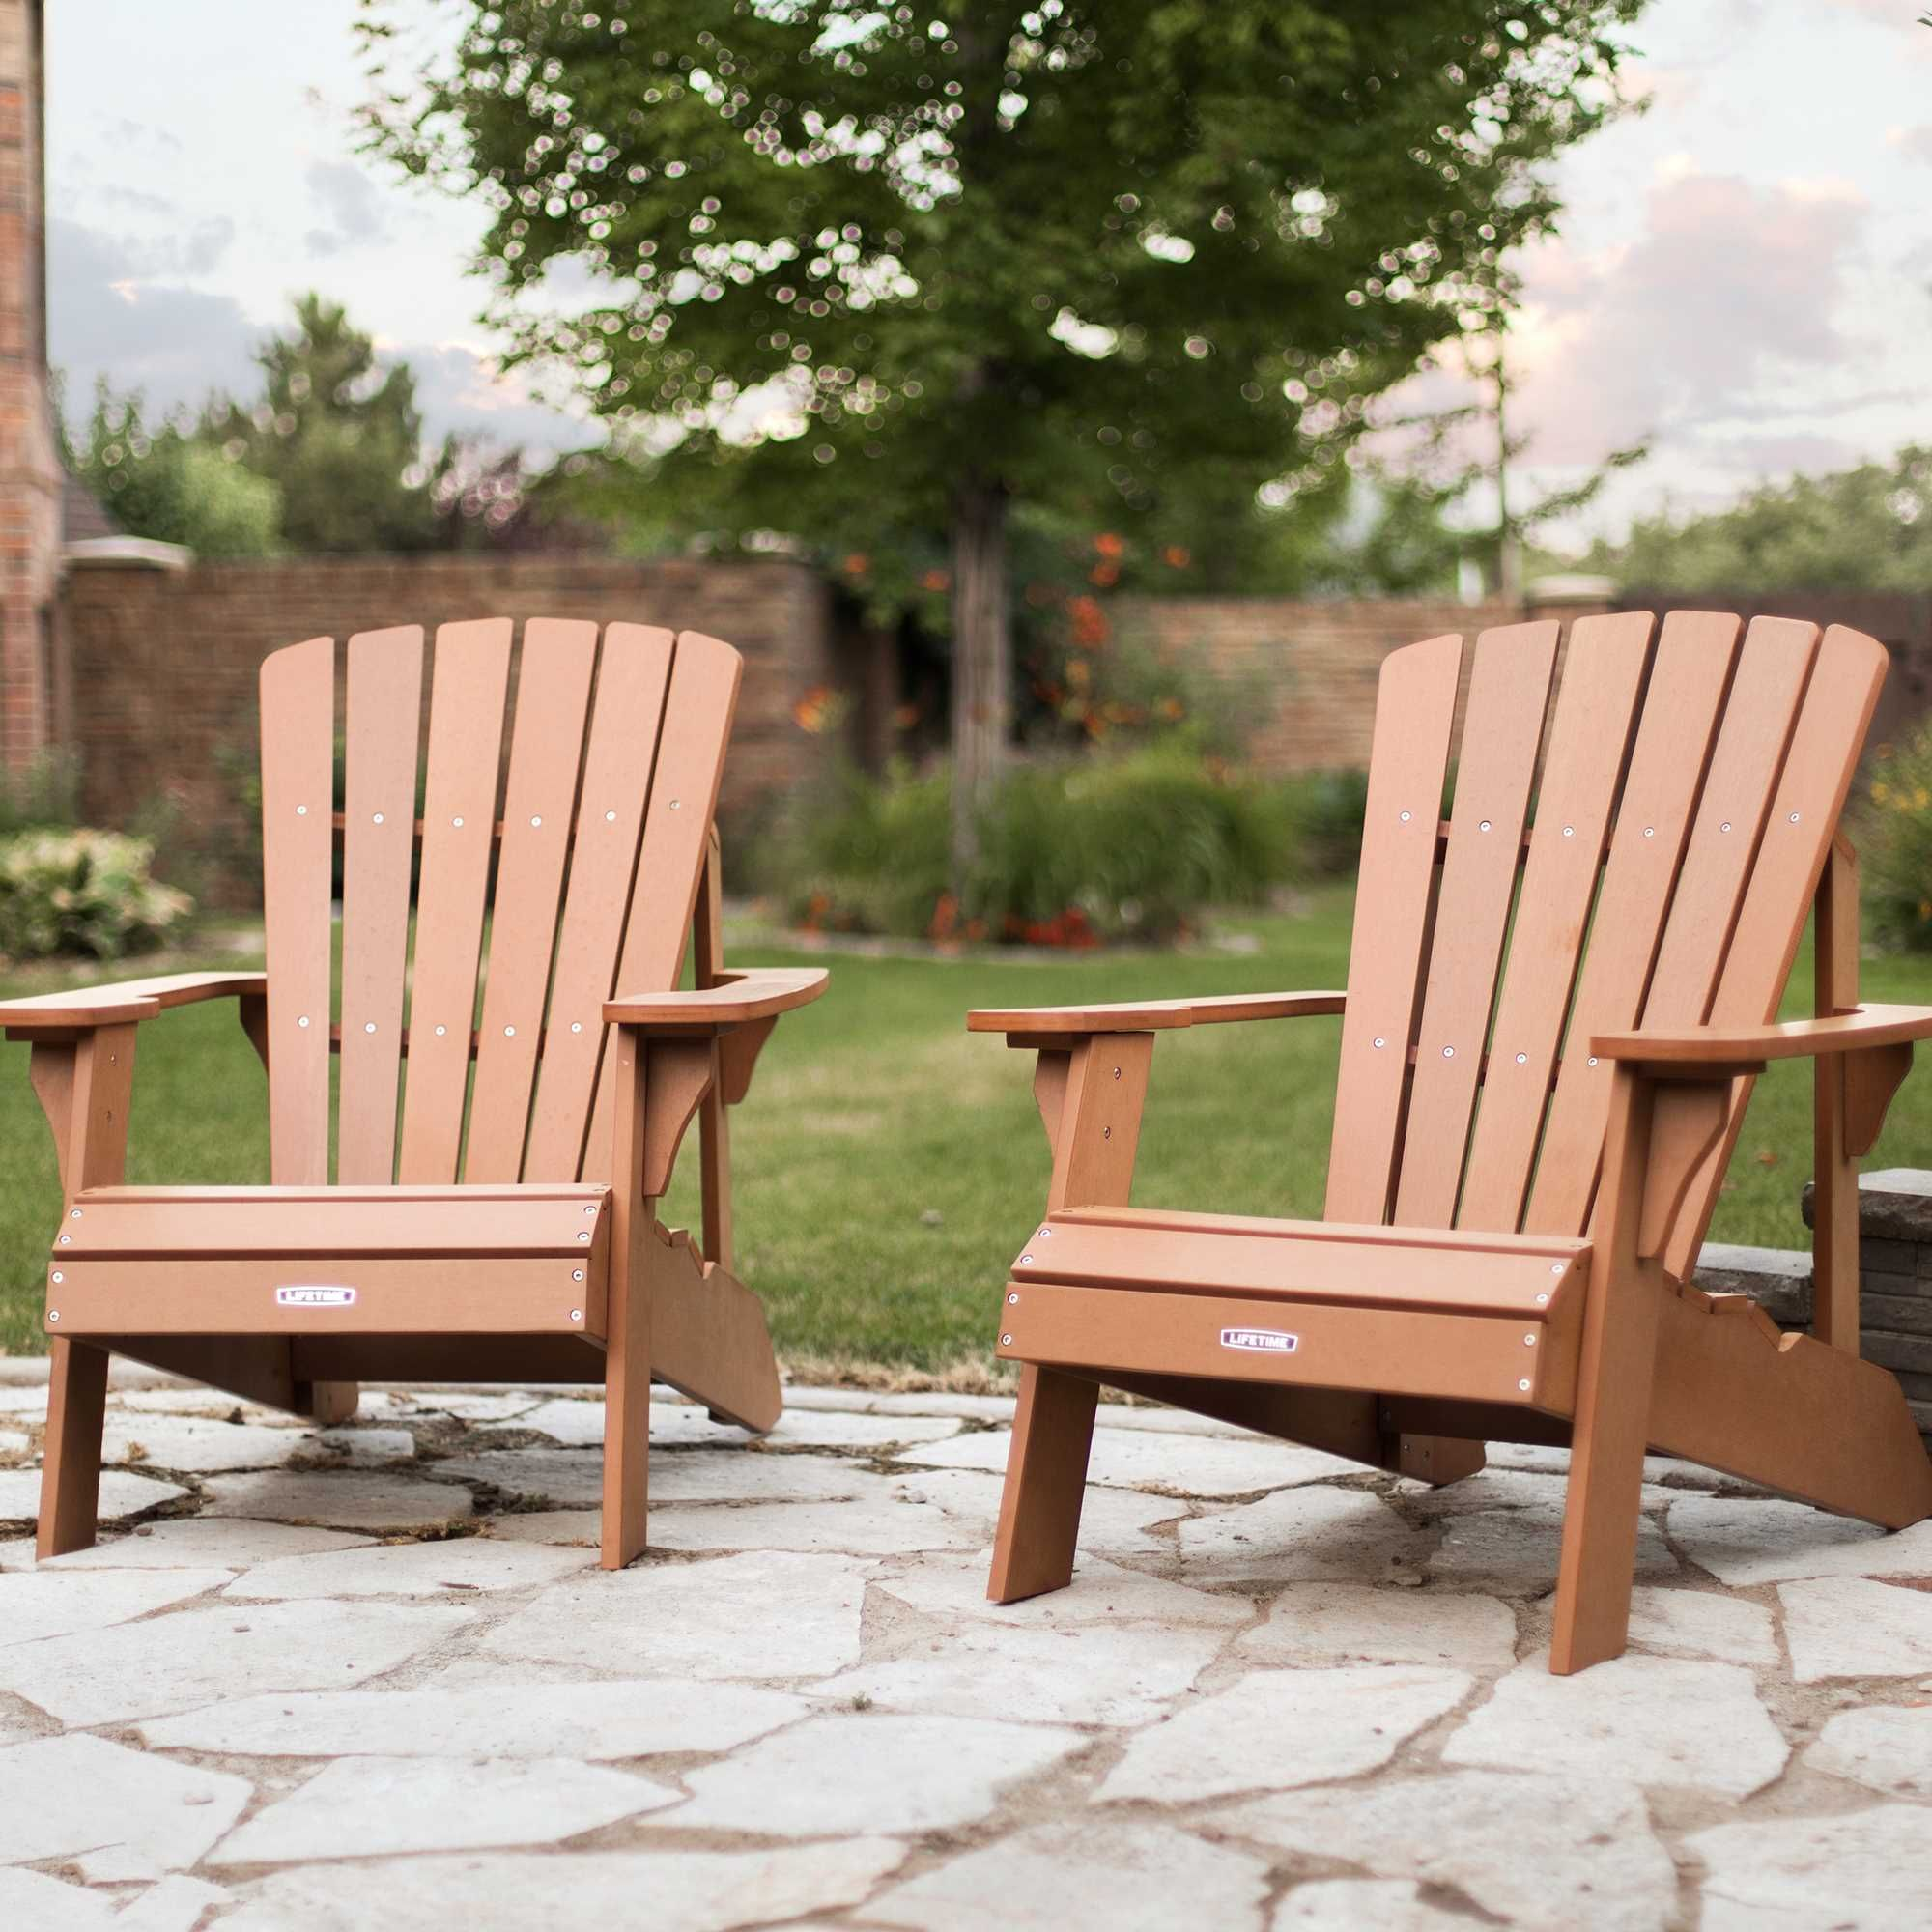 Lifetime Adirondack Chair Lifetime Adirondack Chair 2 Pack